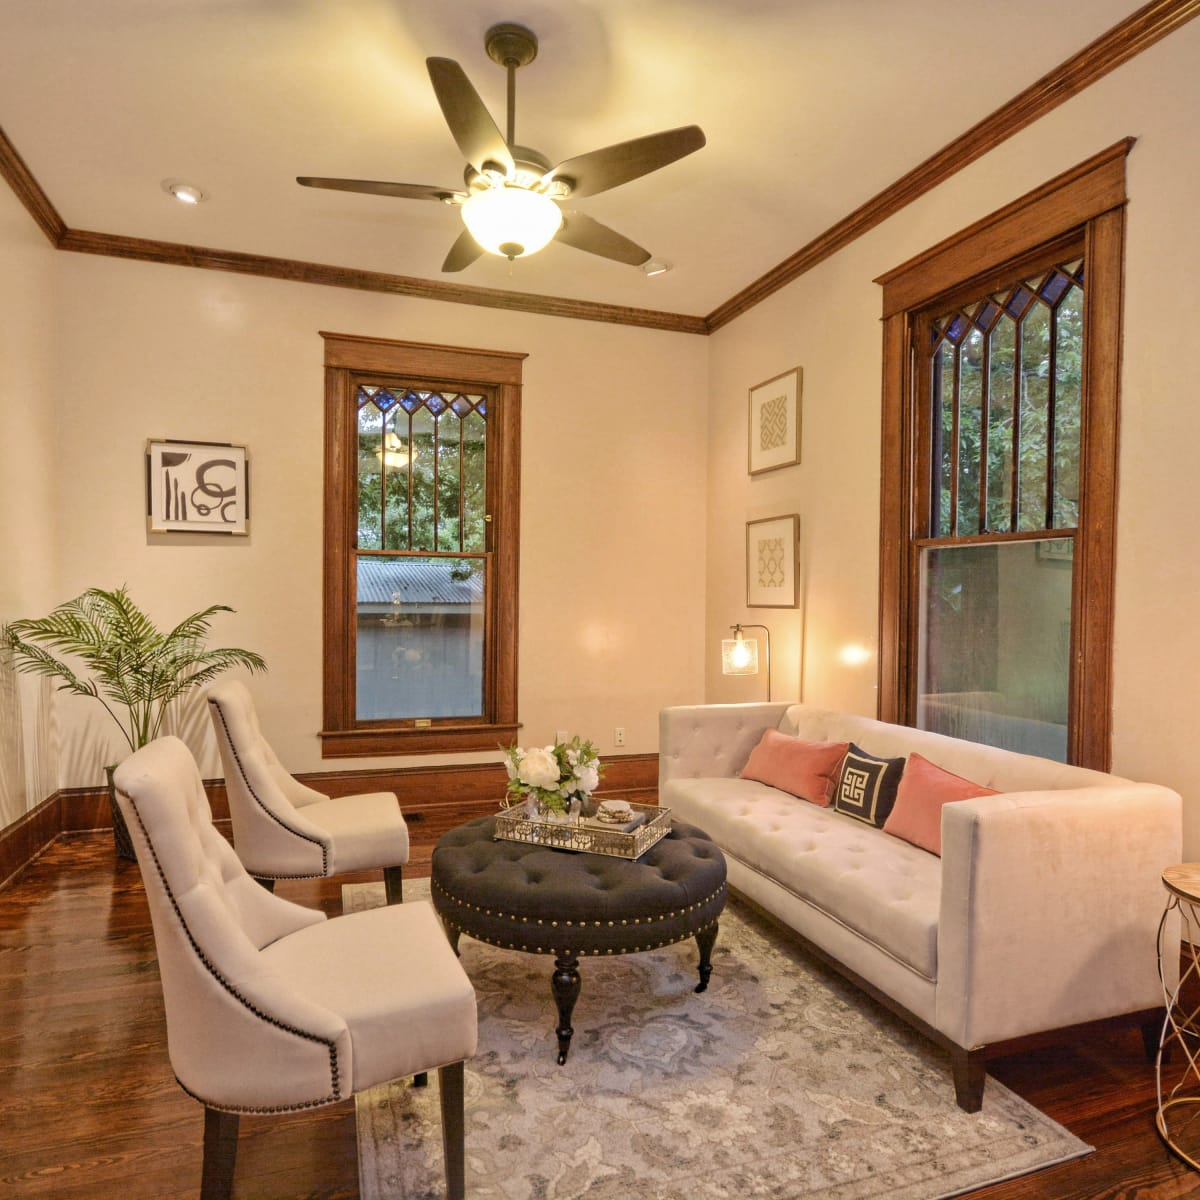 Austin home house 2416 S 2nd Street 78704 lviing room